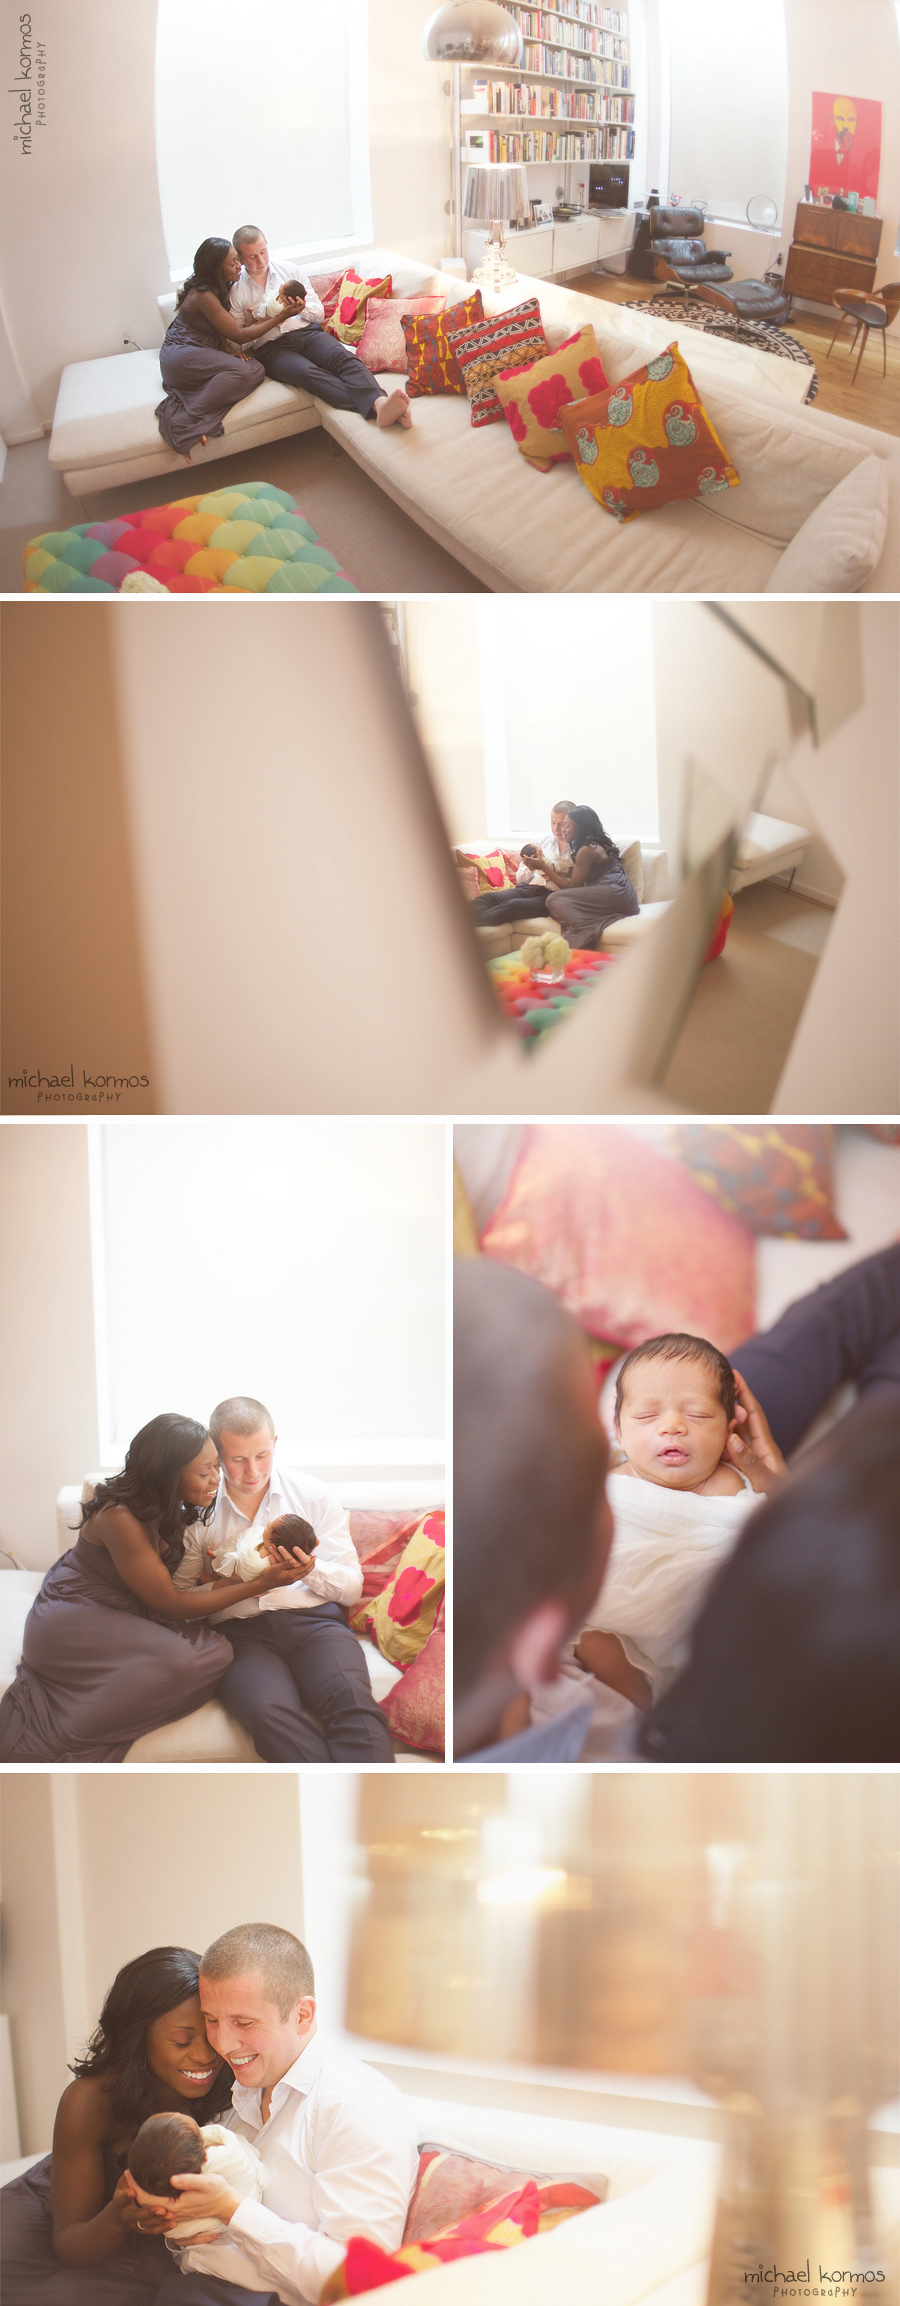 Contemporary modern Manhattan nyc apartment is a beautiful colorful backdrop to capture genuine moments enjoyed with their newborn baby